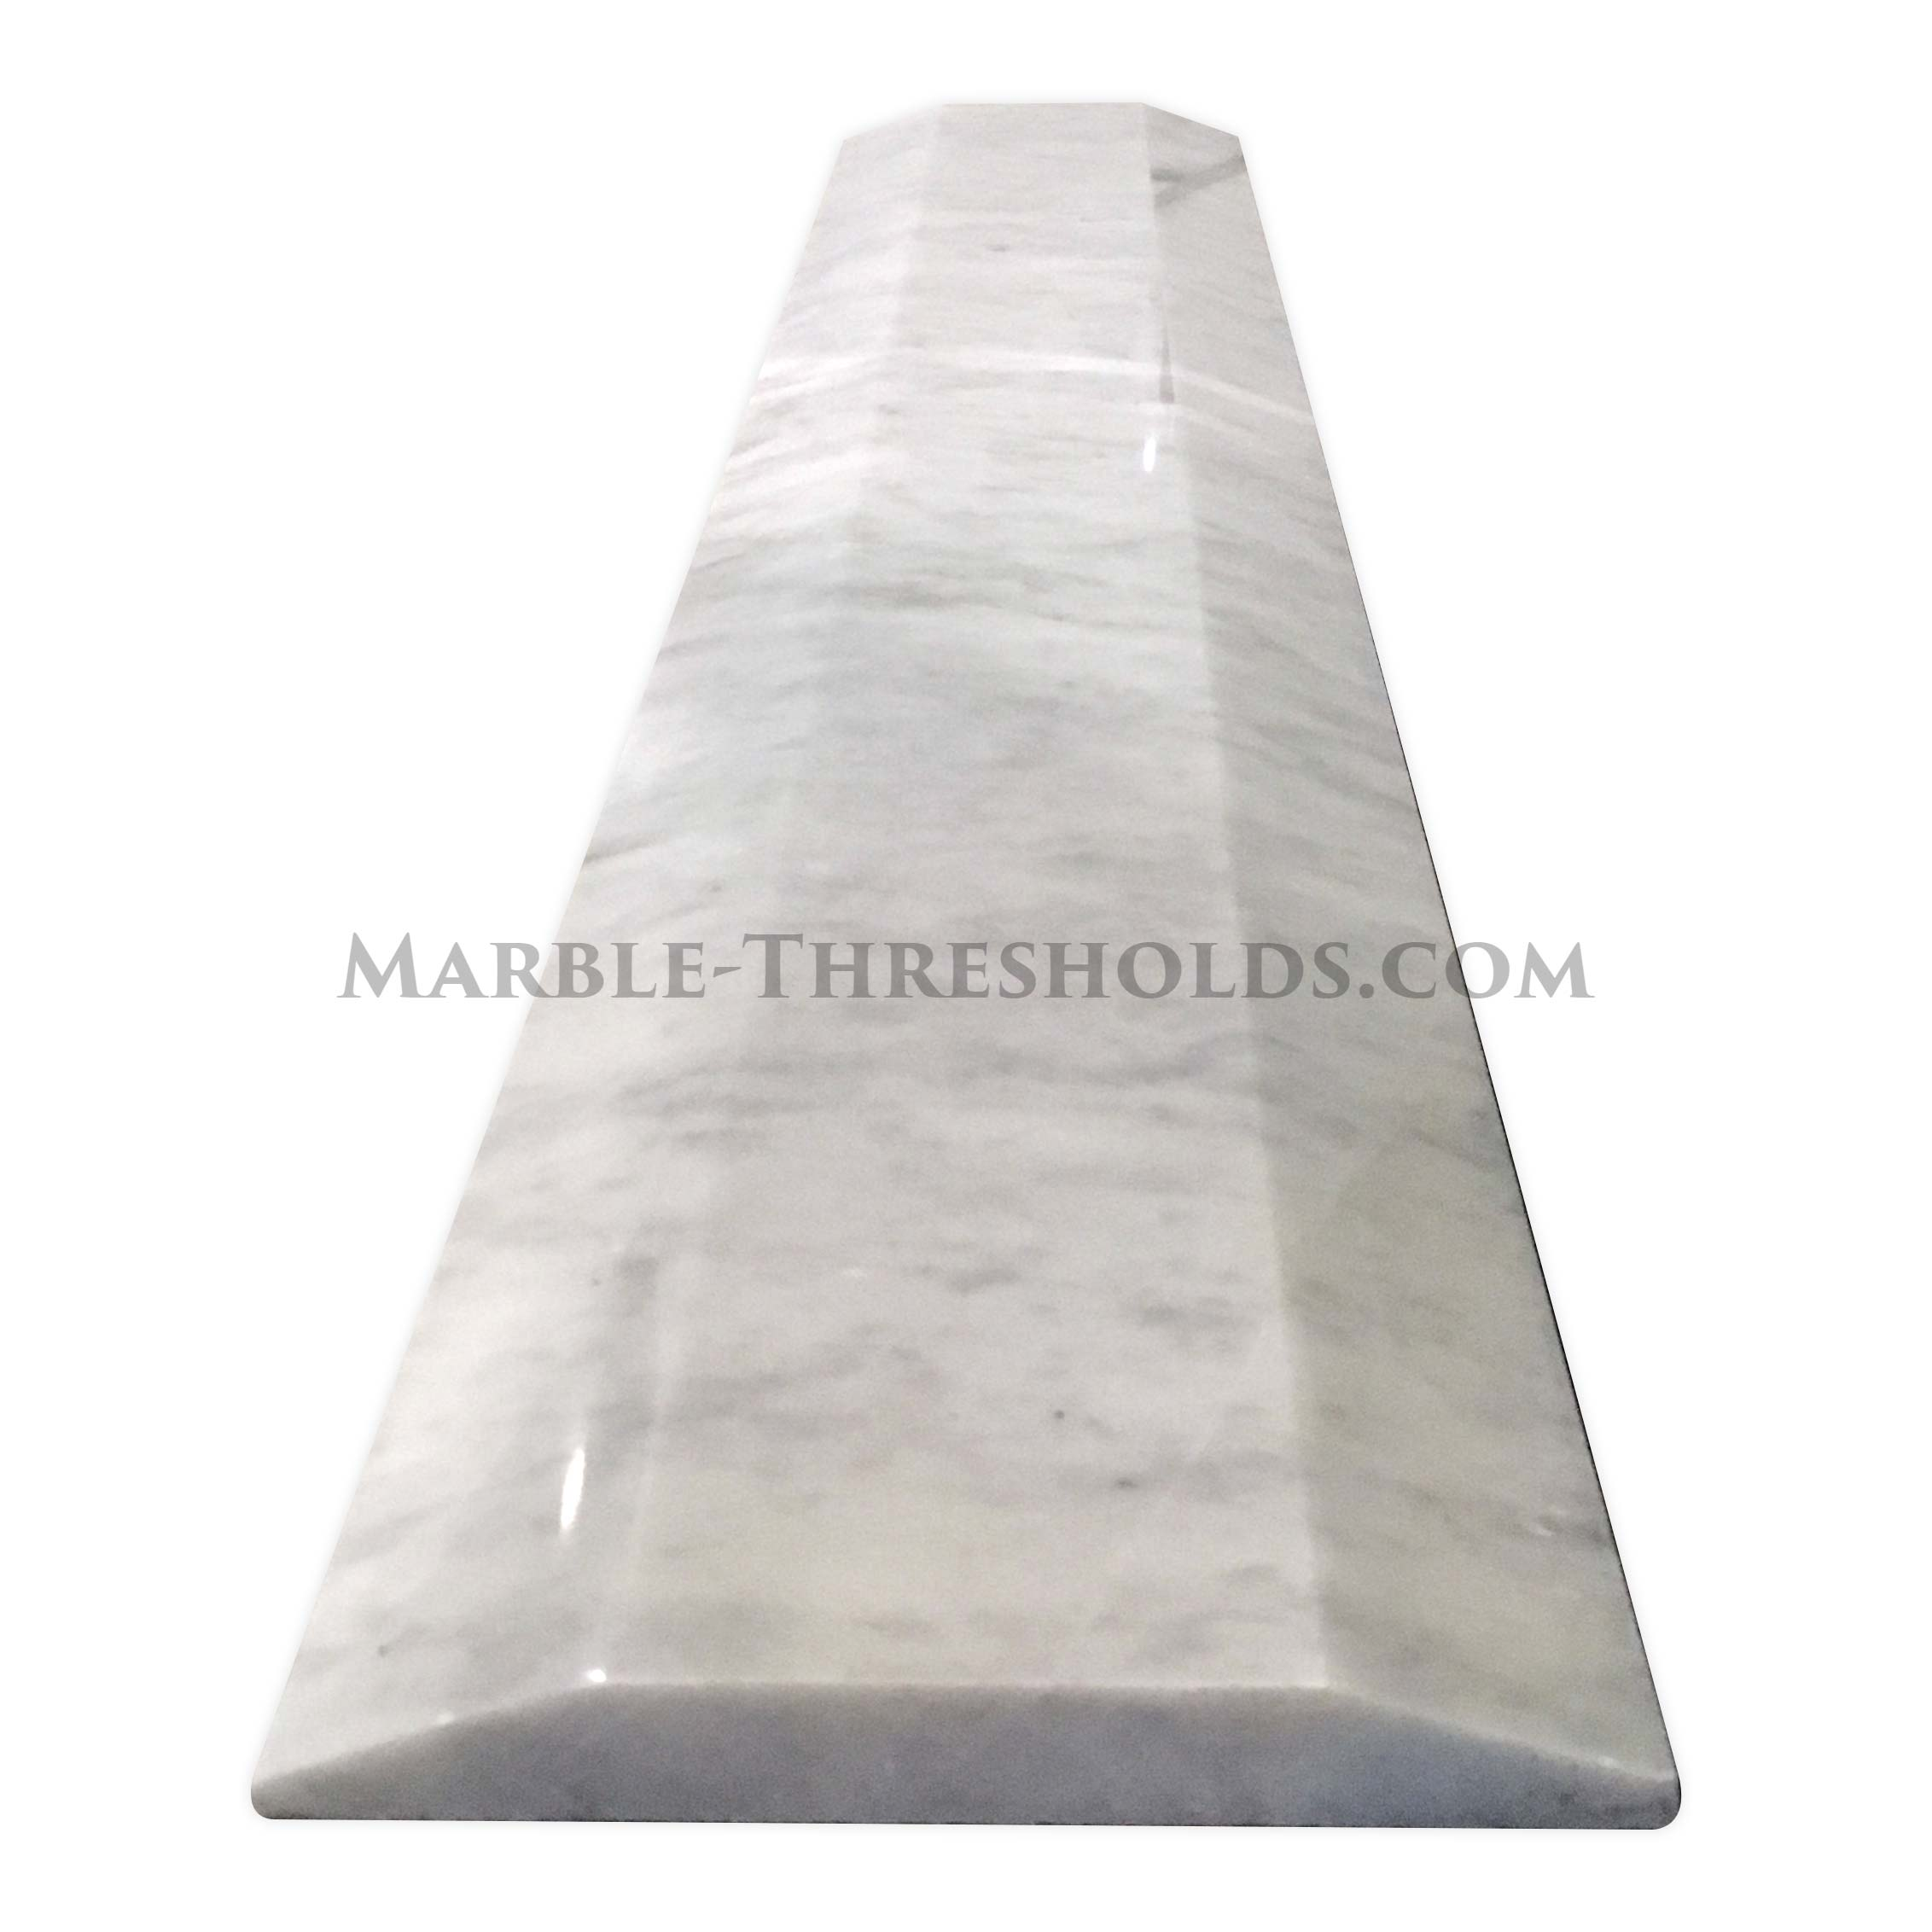 Matching Patterns Double Hollywood Marble Threshold White Carrara 30 X 5